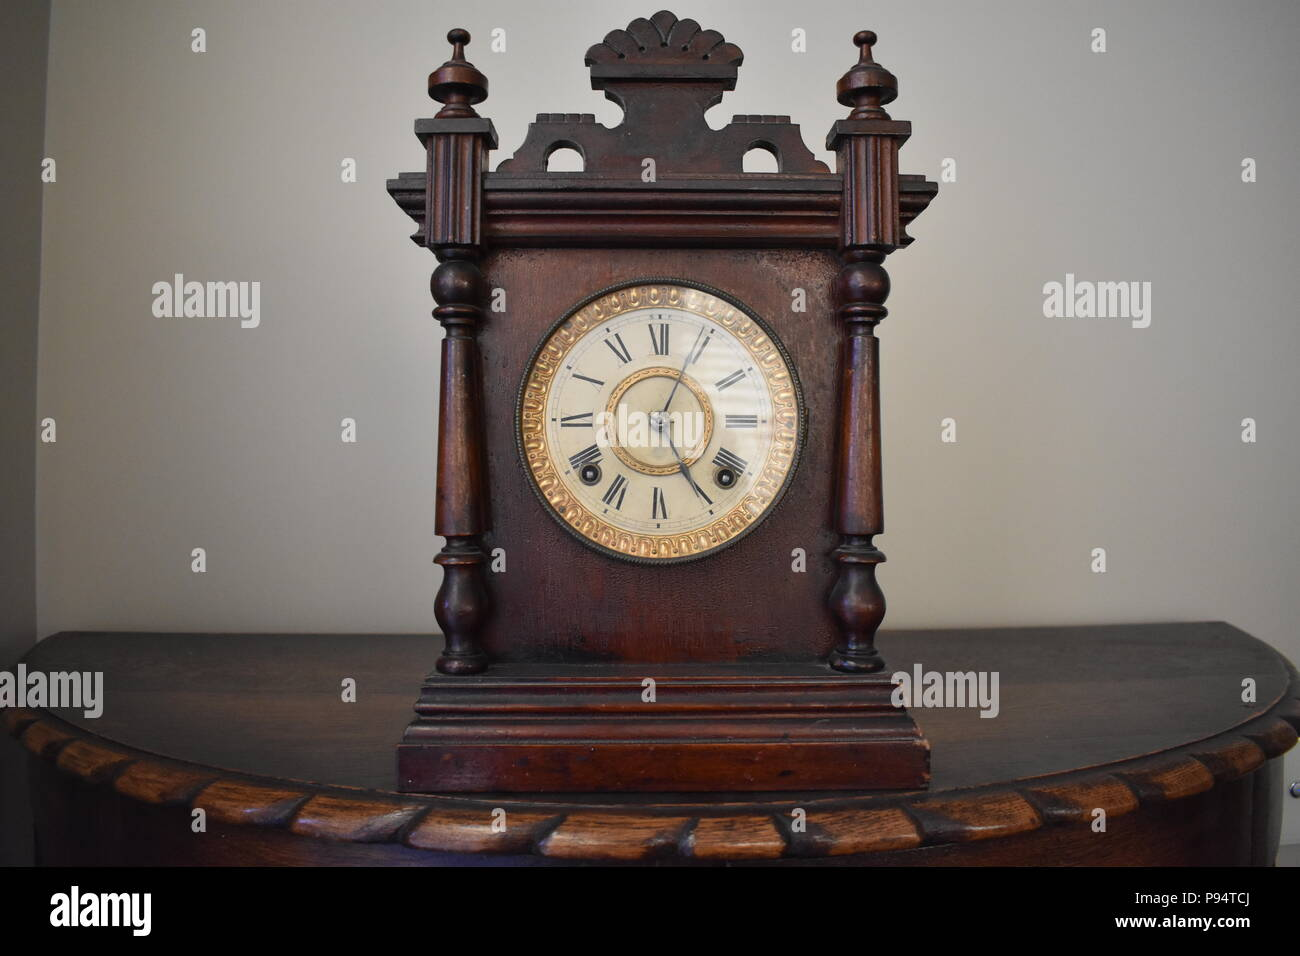 Old wooden clock on mantle piece - Stock Image